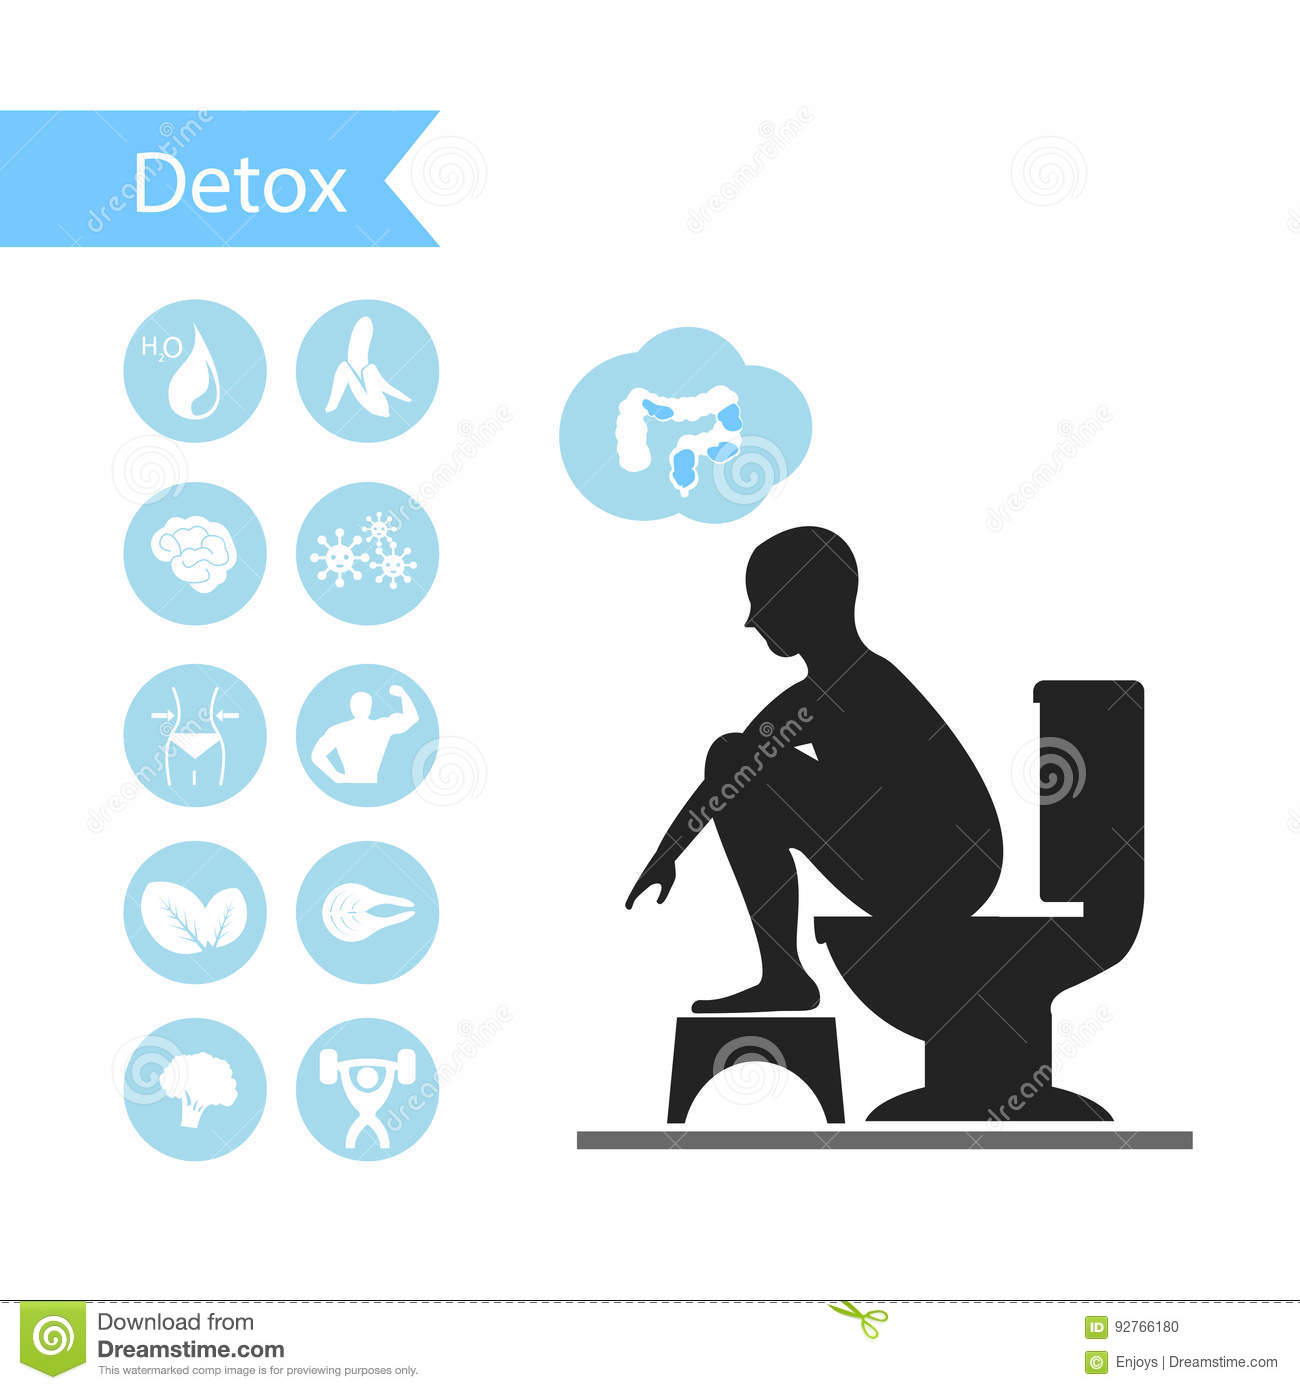 silhouettes man sitting on a toilet with detox icons stock illustration image 92766180. Black Bedroom Furniture Sets. Home Design Ideas